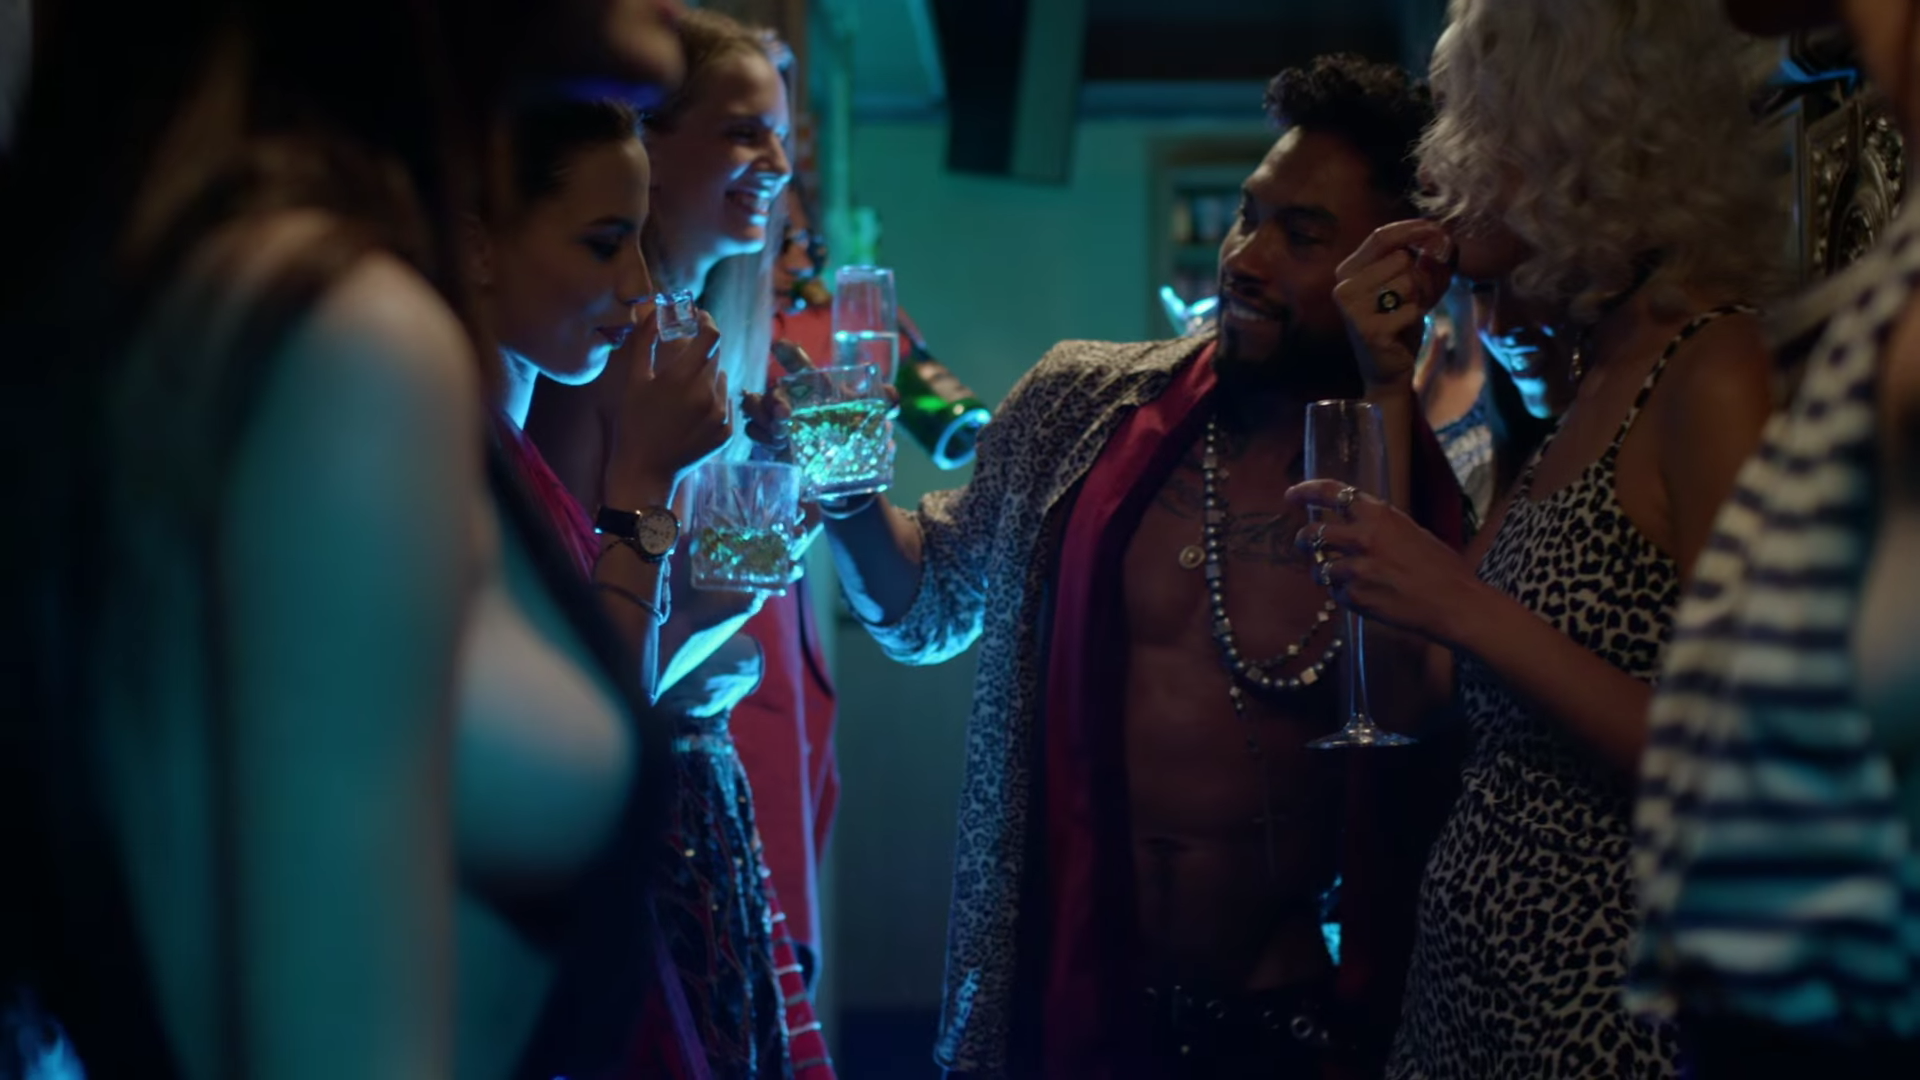 Miguel having drinks with everyone at the party in the Waves video.jpg